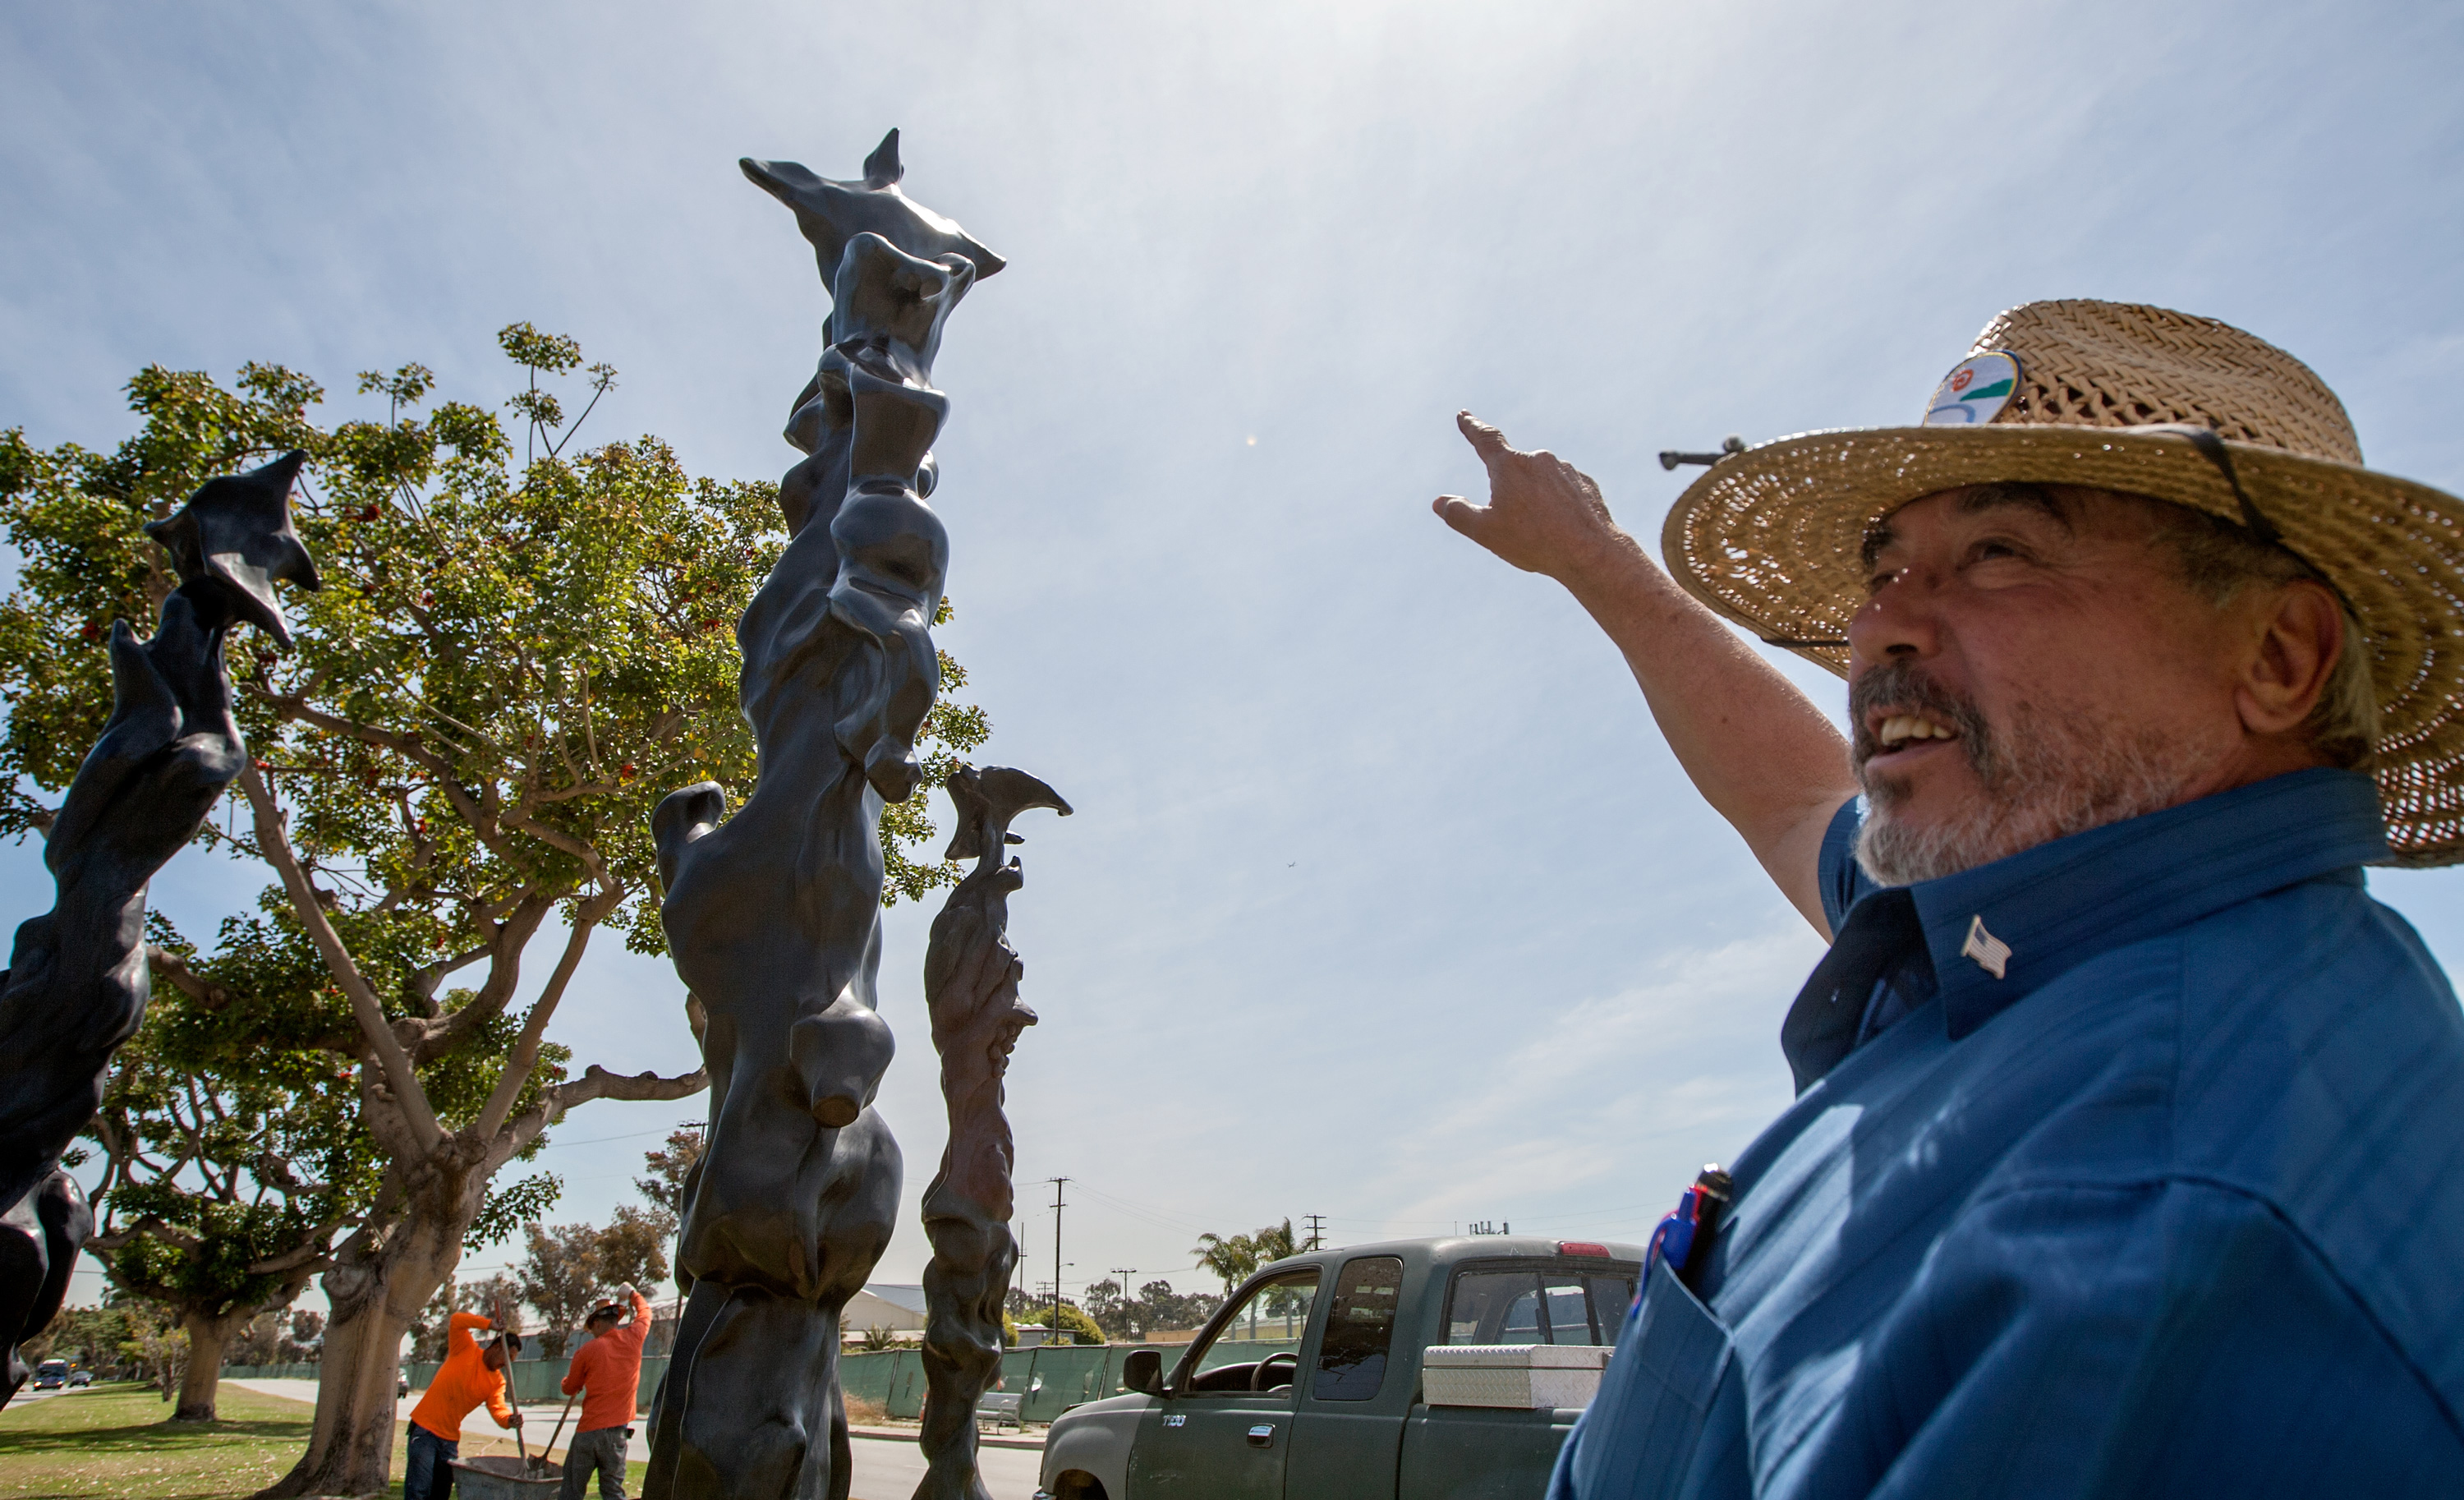 Public Works inspector Ramon Gutierrez oversees the final stages of the installation of Herb Alpert's 'Black Totems' sculptures on Friday at the corner of Olympic Boulevard and 26th Street. Grammy-winning musician and artist Alpert drew his inspiration for the pieces from totem poles from indigenous tribes in the Pacific Northwest. (Michael Yanow editor@smdp.com)